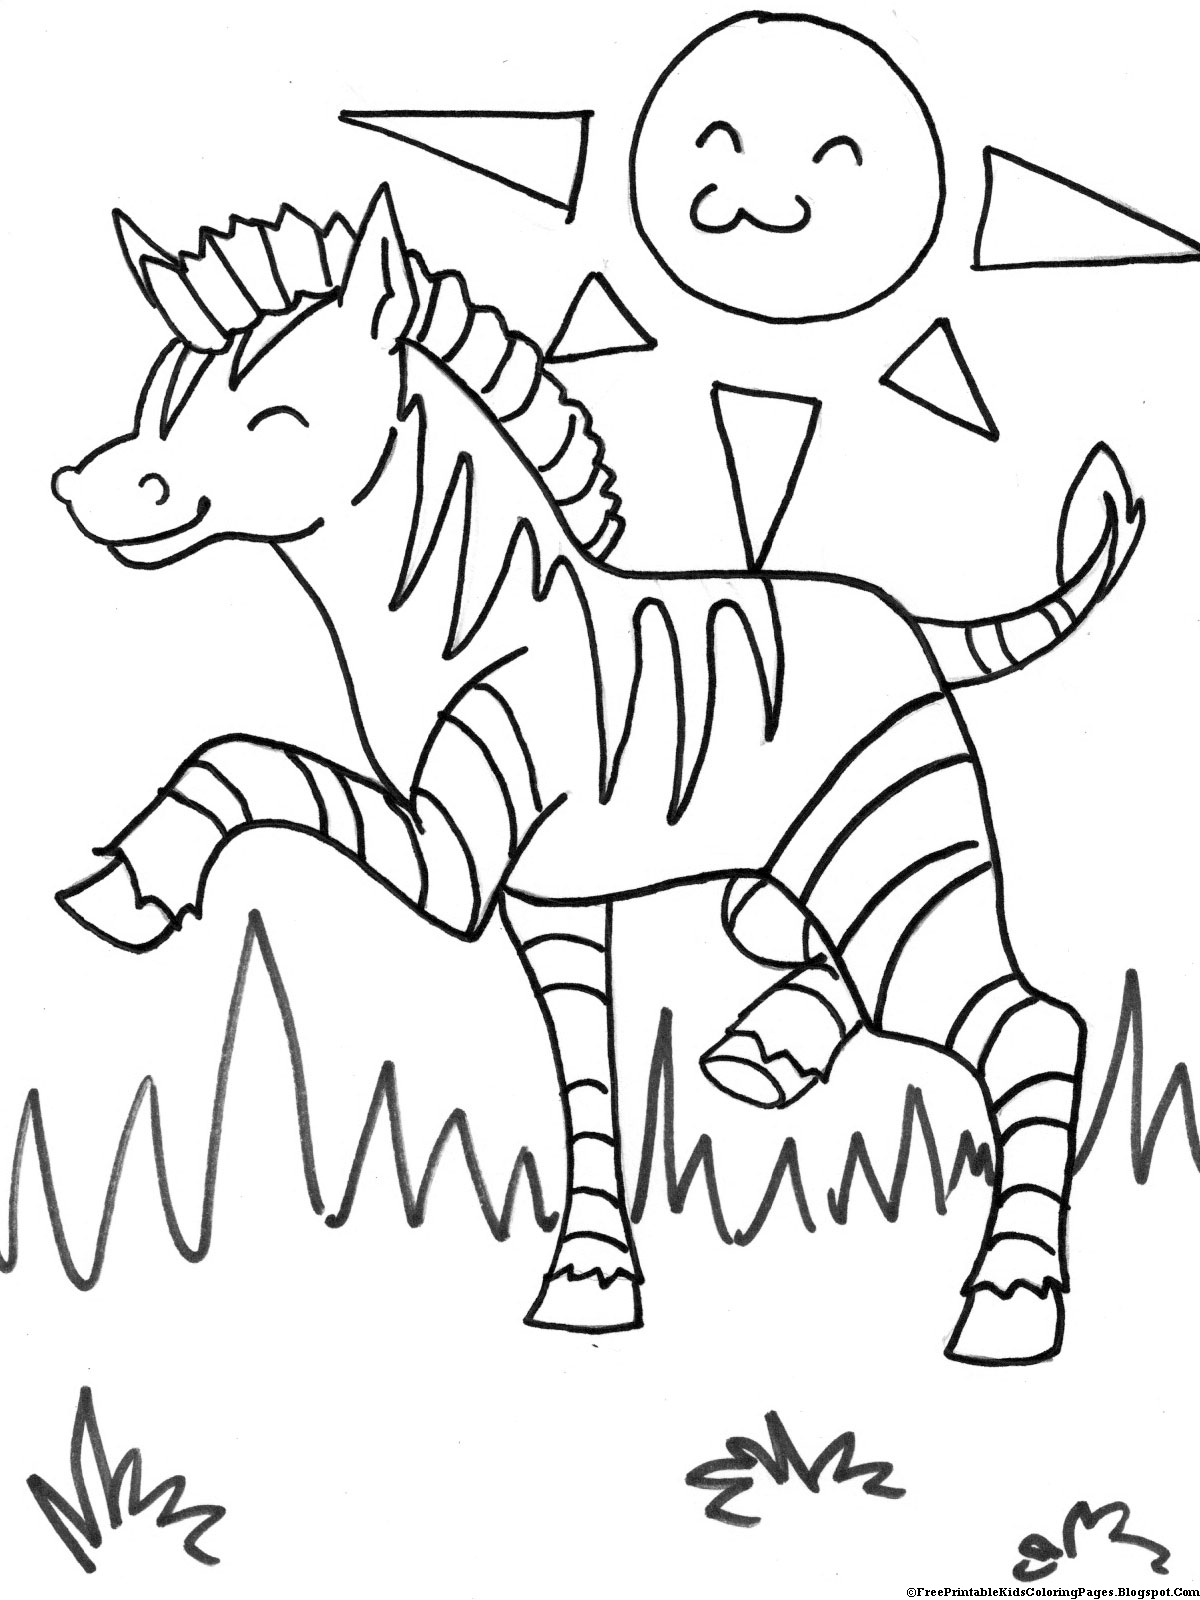 zebra colouring pages to print 9 best images of zebra prints letters printables zebra zebra colouring print pages to